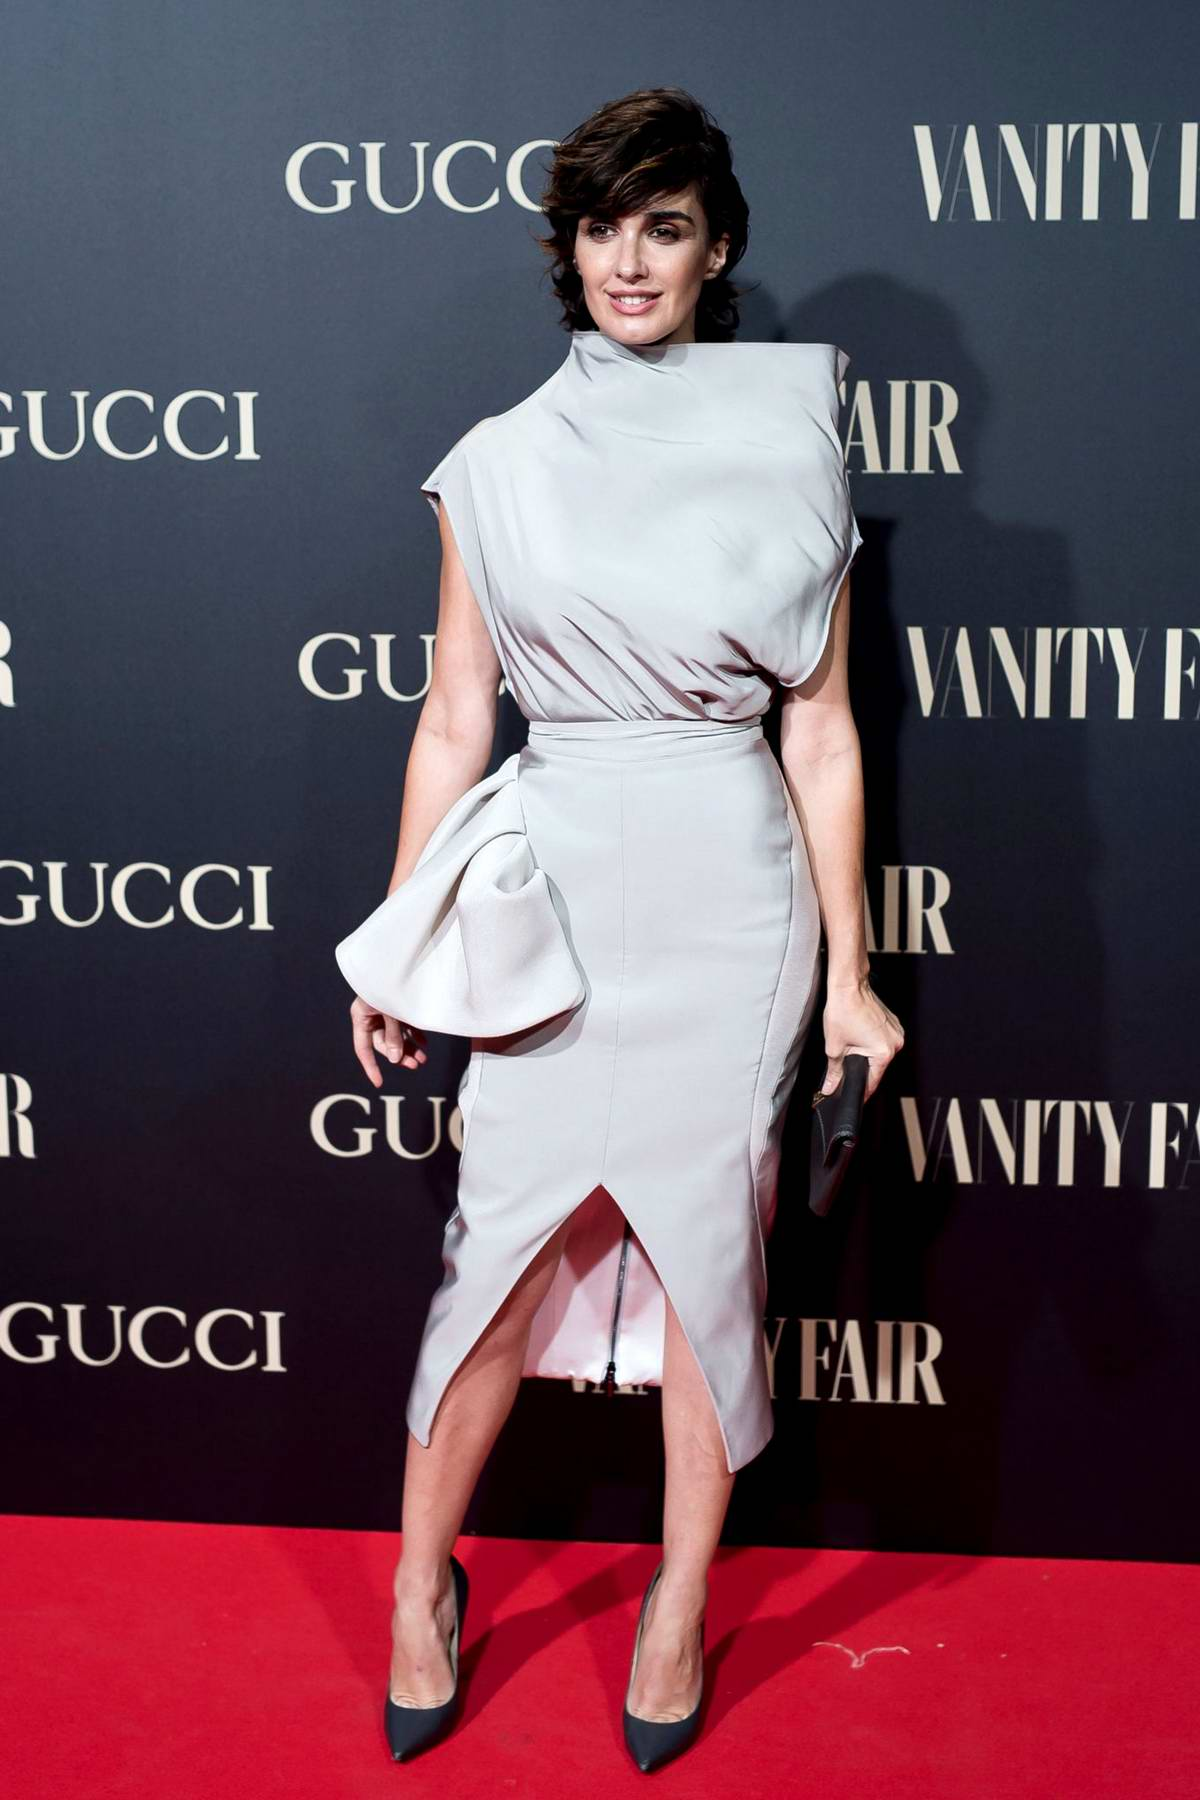 Paz Vega attends 'Vanity Fair Personality Of The Year' Awards in Madrid, Spain